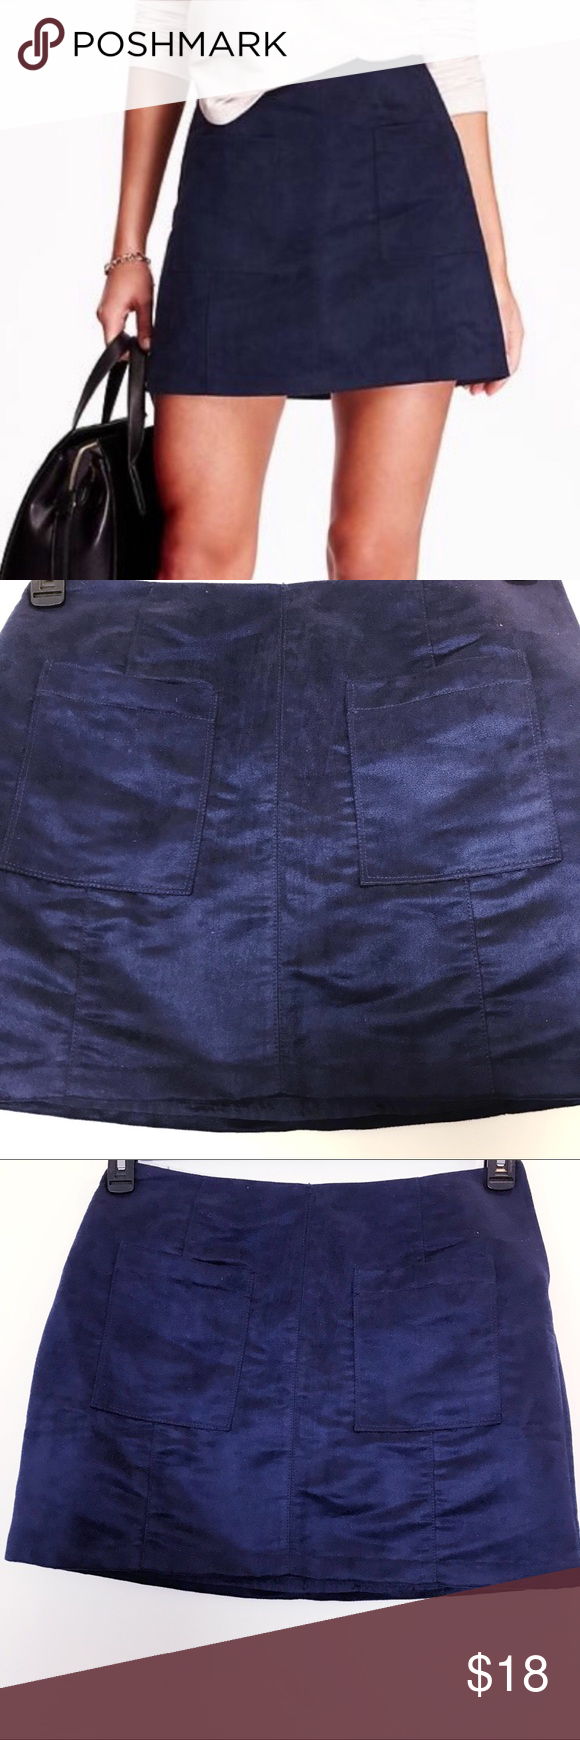 9bc8617c10c NWT Old navy faux suede mini skirt size6 New with tags old navy skirt in navy  blue faux suede The photo doesn t do justice how beautiful it is.